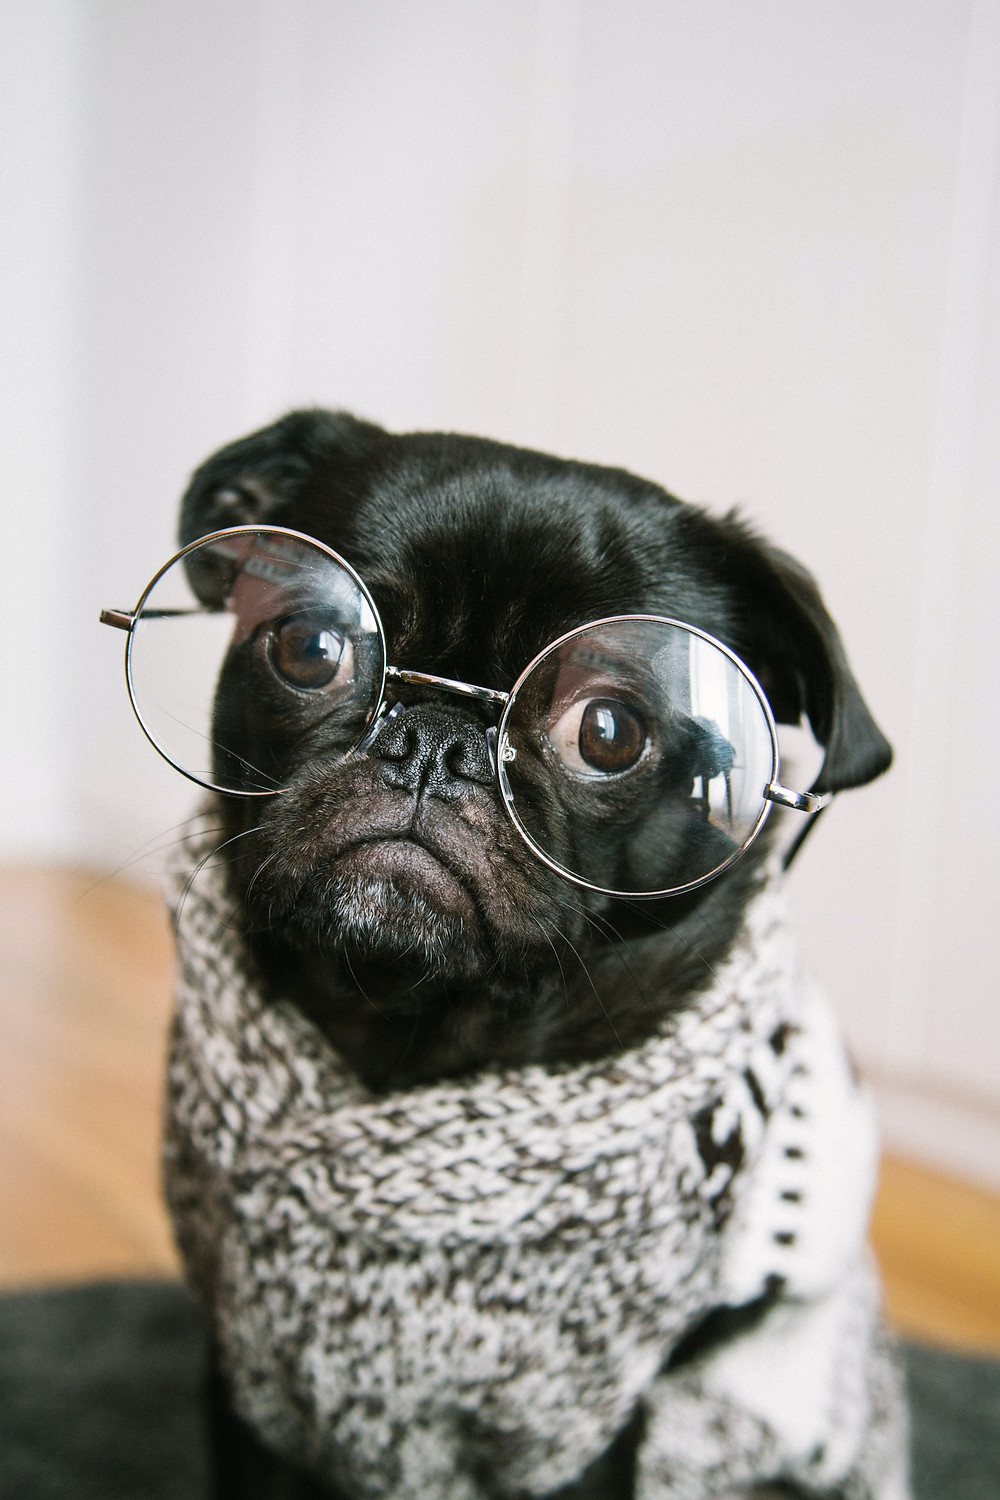 A pug with glasses